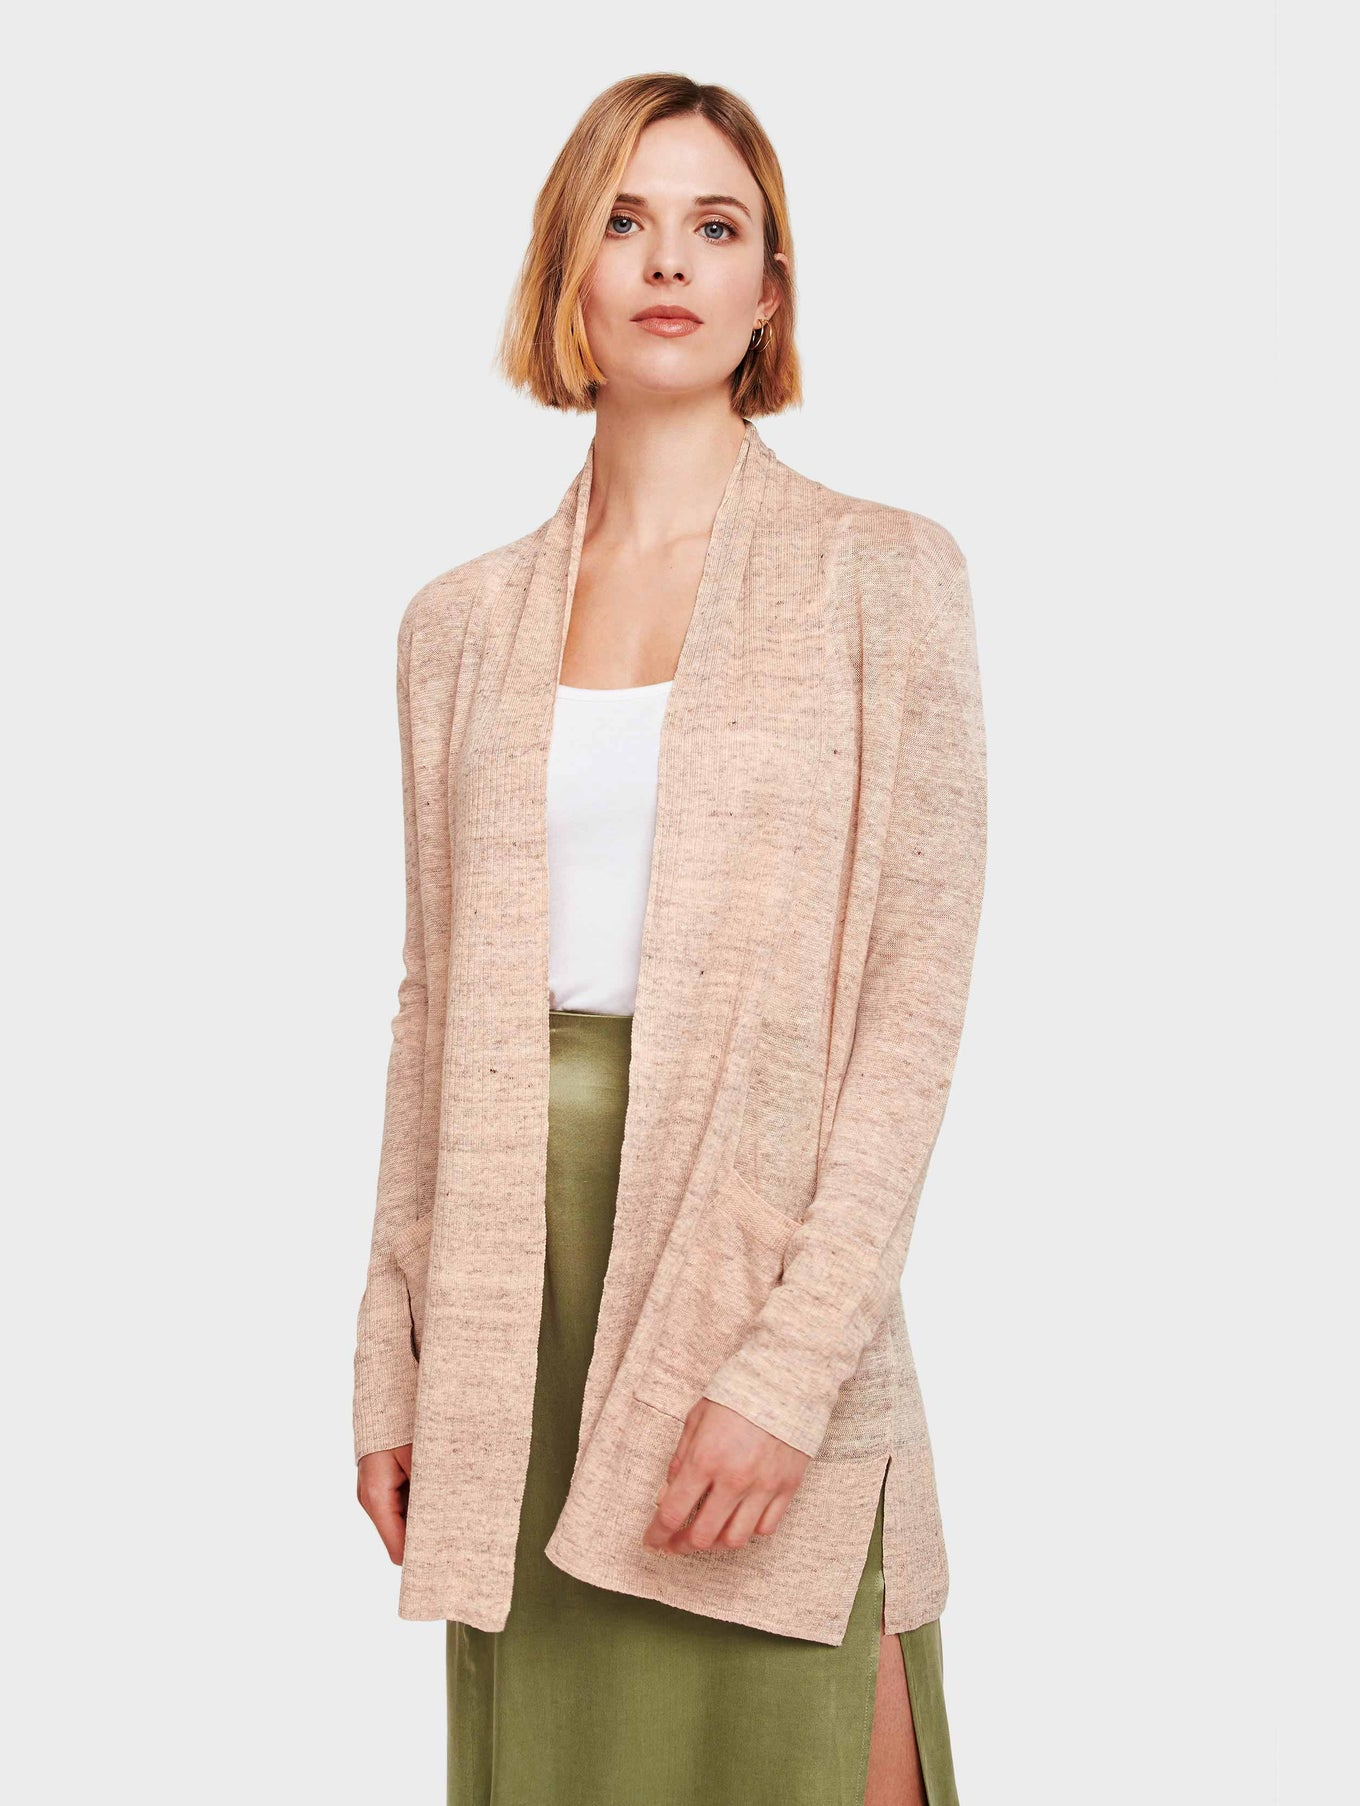 Linen Ribbed Placket Pocket Cardigan - Seashell Heather - Image 2